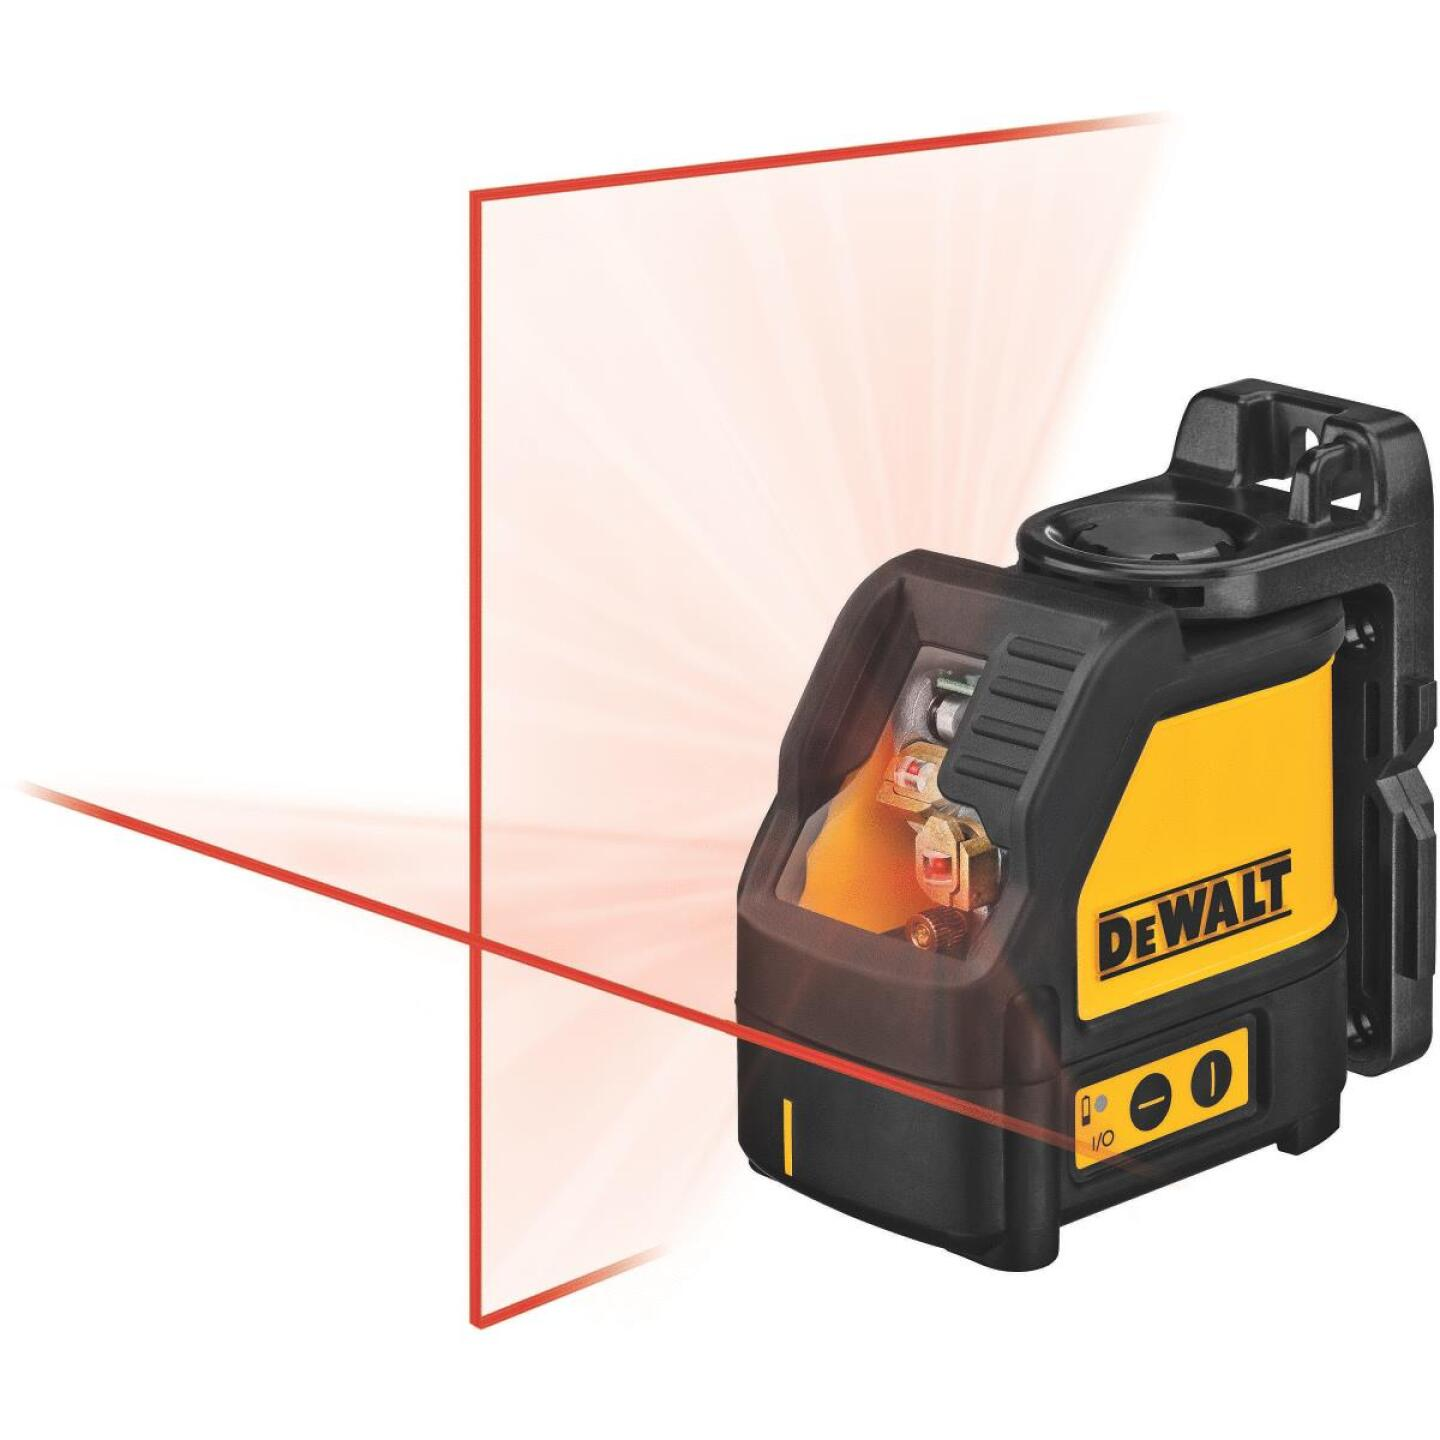 DeWalt 100 Ft. Self-Leveling Cross-Line Laser Level Image 2